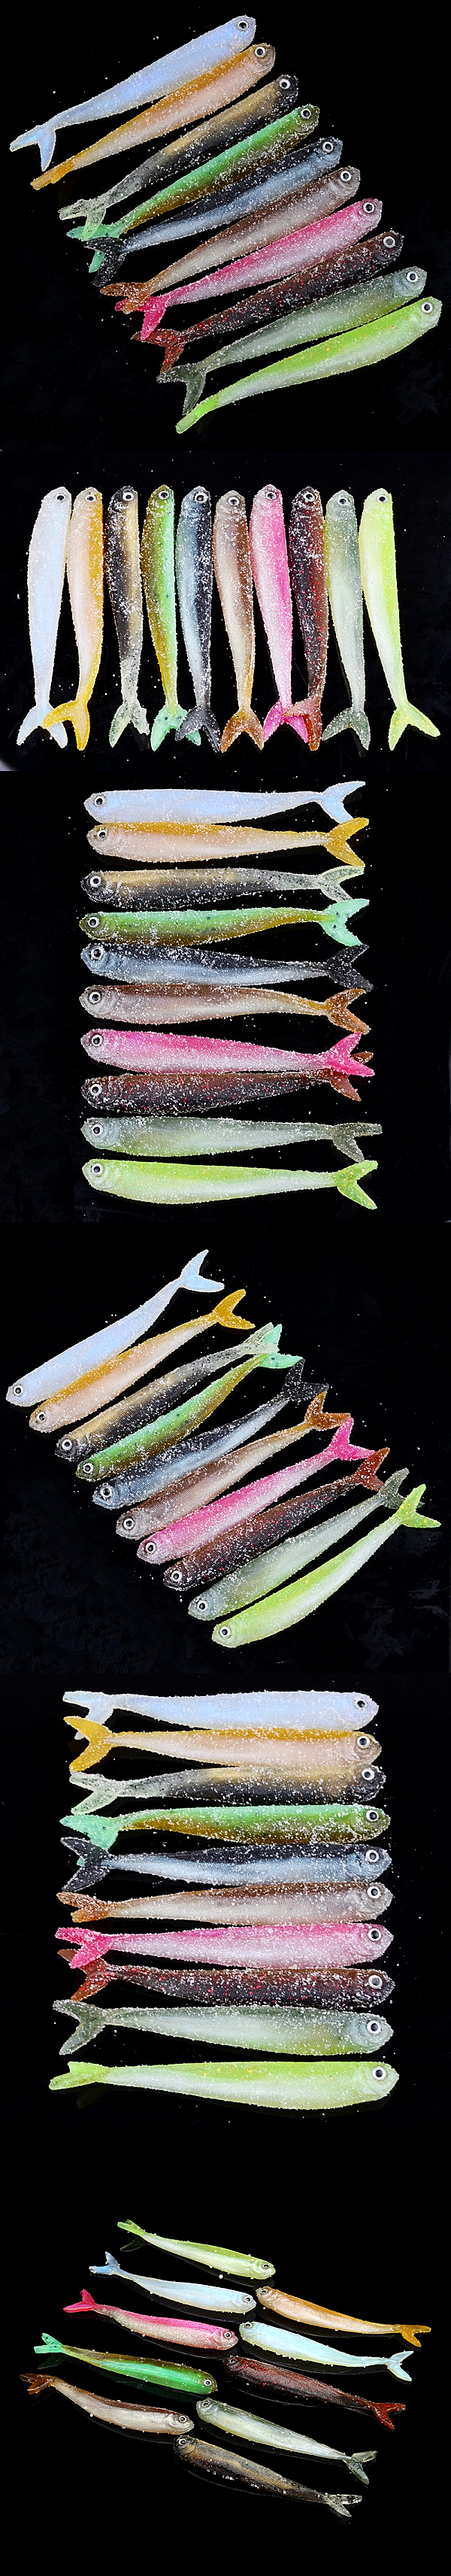 Proberos 10Pcs False Baits Fishing Lures 8.9cm Classic Soft Fishing Baits